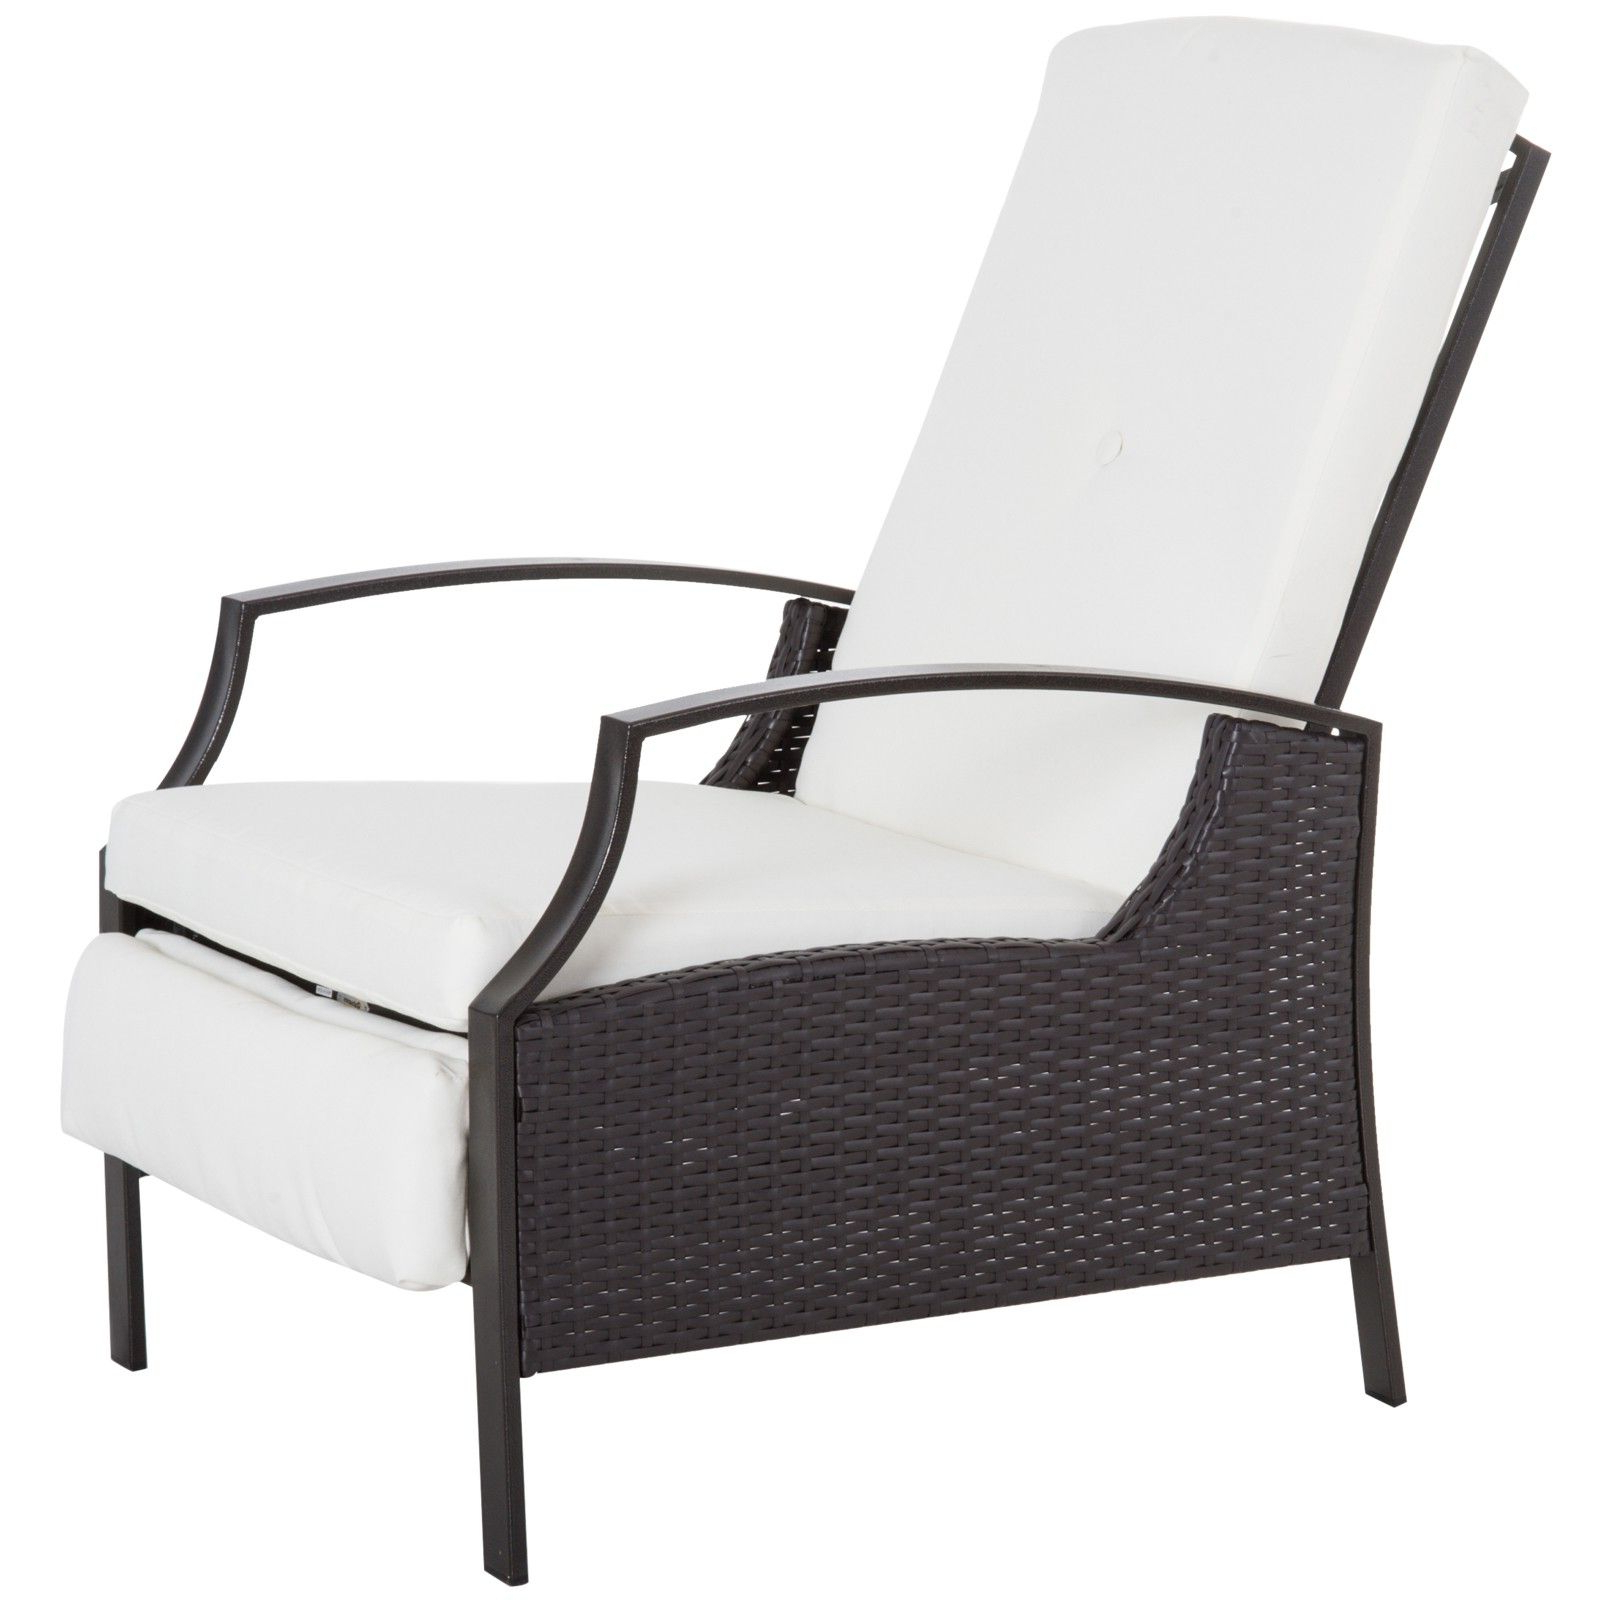 Outsunny Outdoor Rattan Recliner Chair With Cushion – Dark Regarding Most Recent Outdoor Adjustable Rattan Wicker Recliner Chairs With Cushion (Gallery 6 of 25)